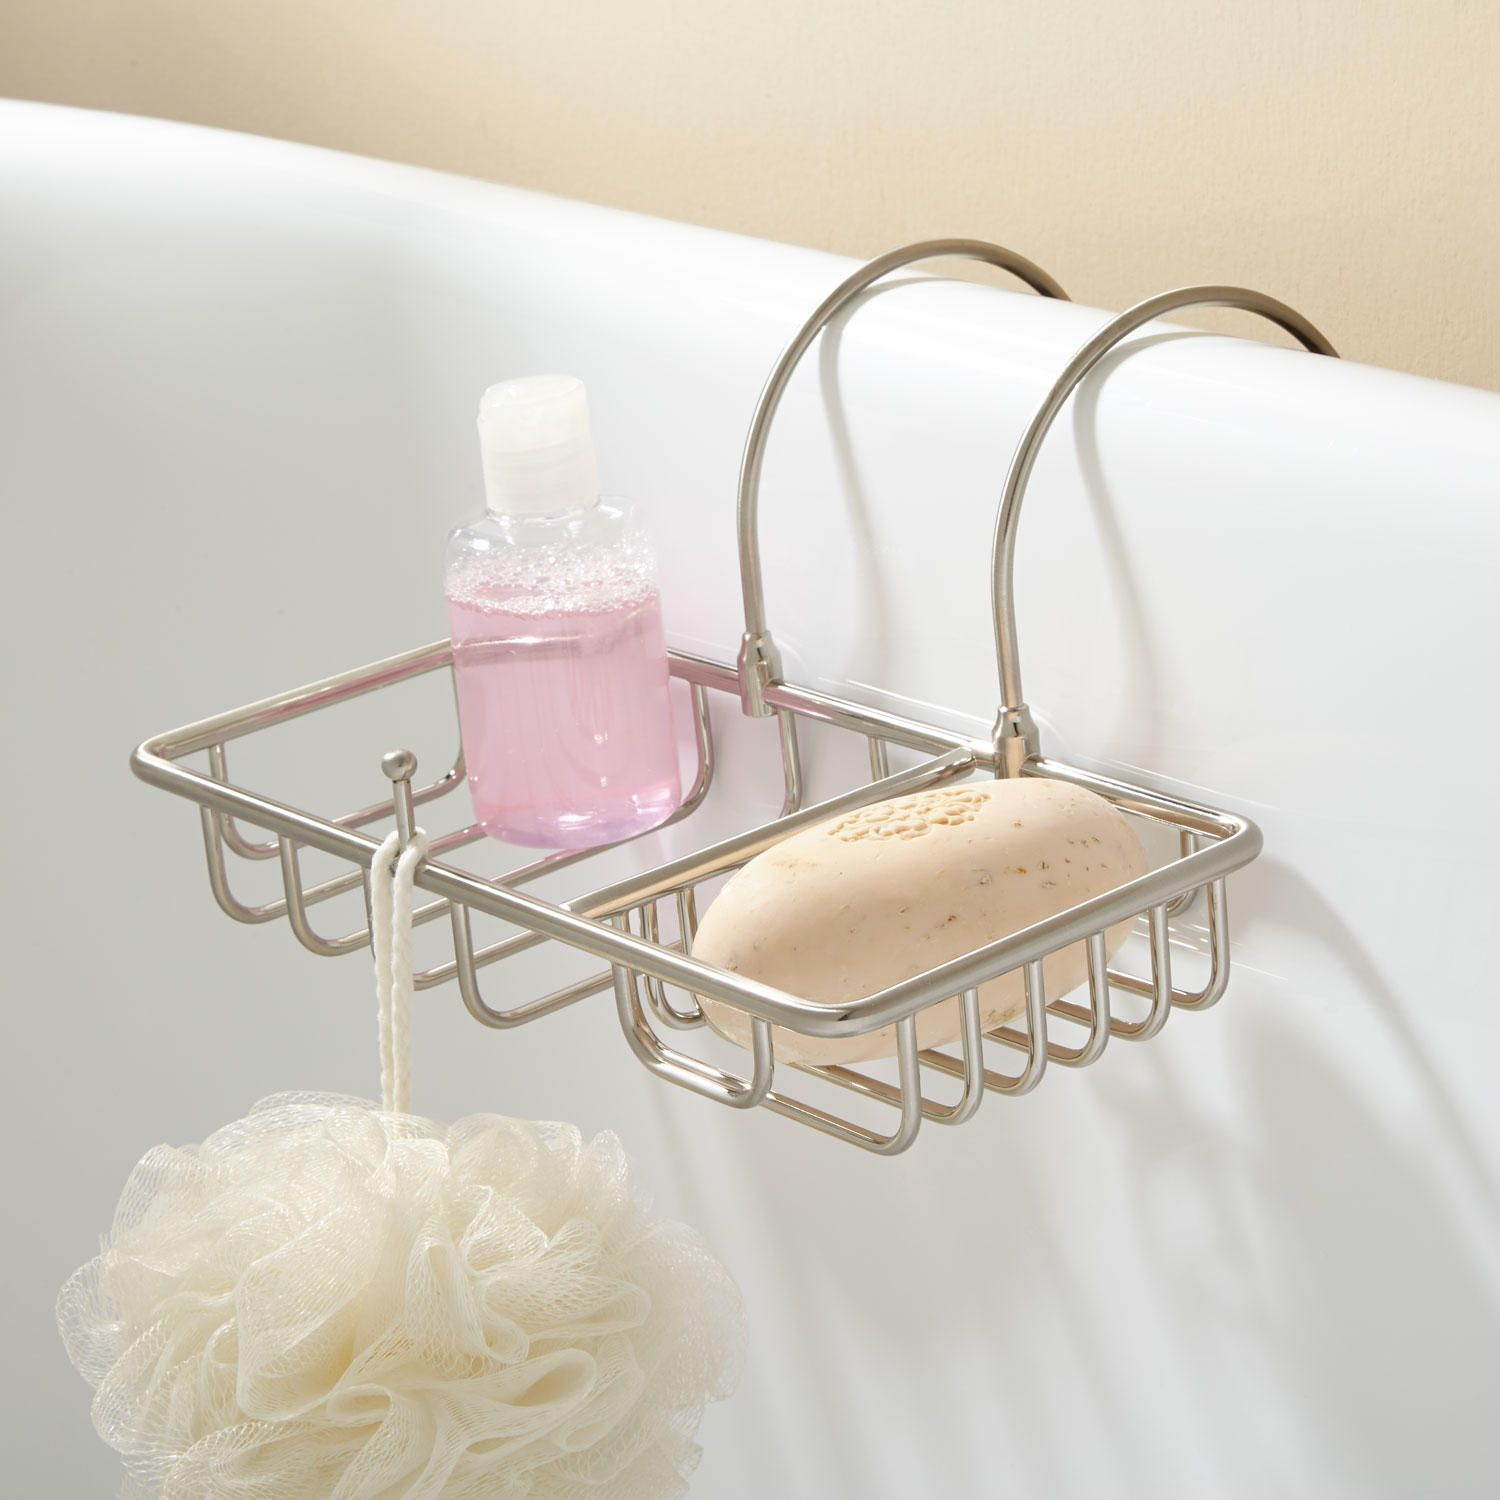 over the rim soap basket with sponge holder bathrooms clawfoot rh pinterest com